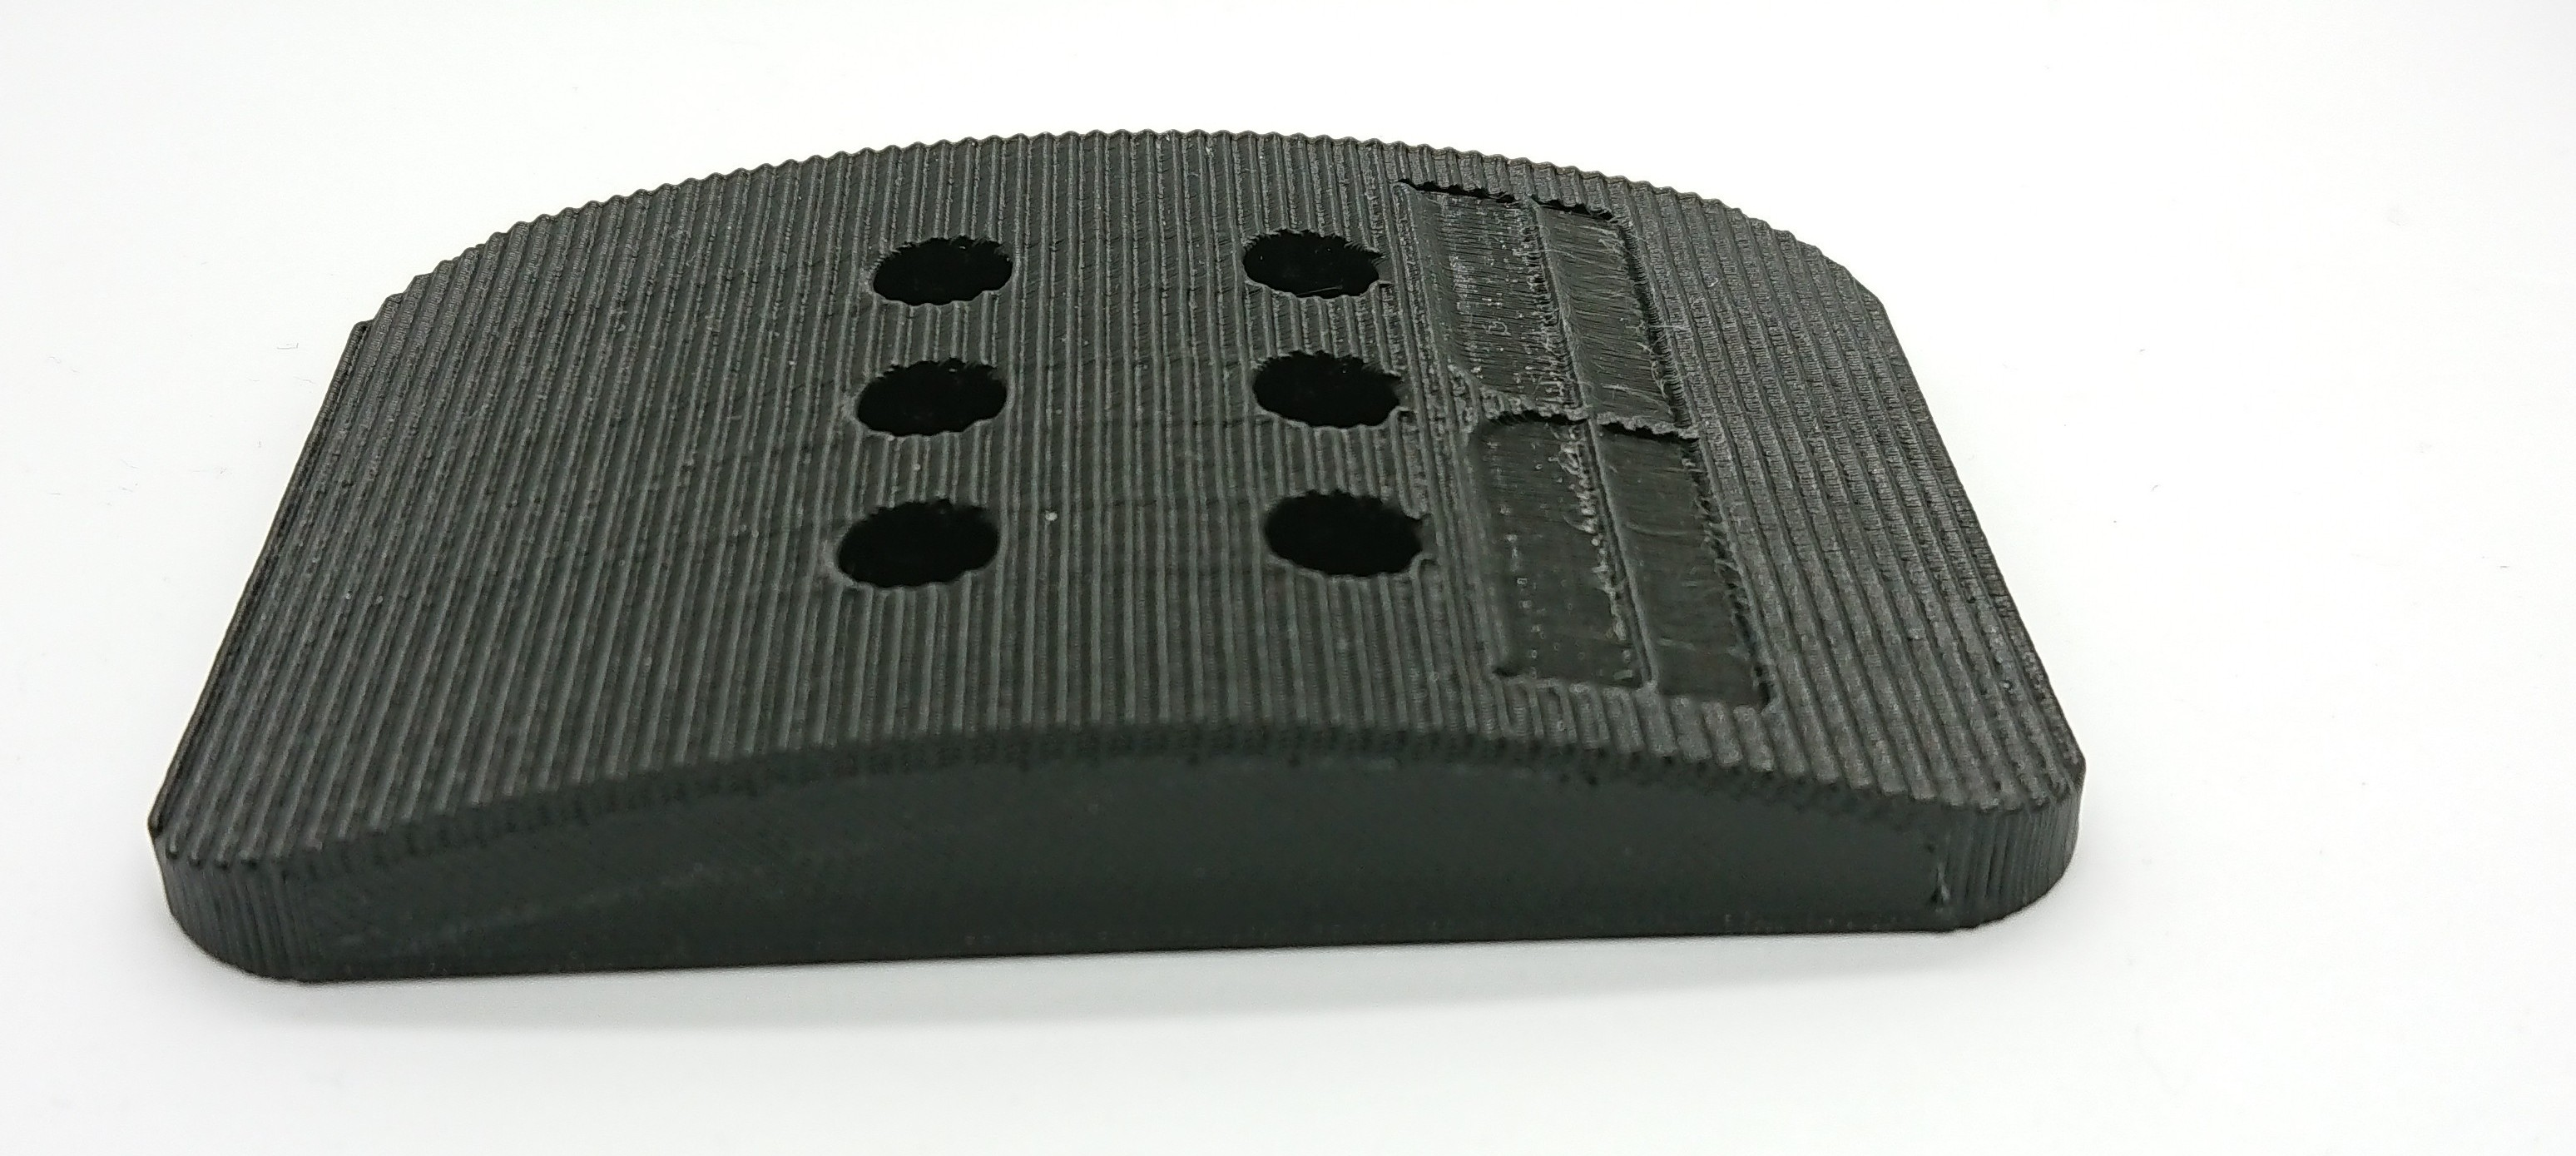 For Thrustmaster T3PA/PRO Pedals